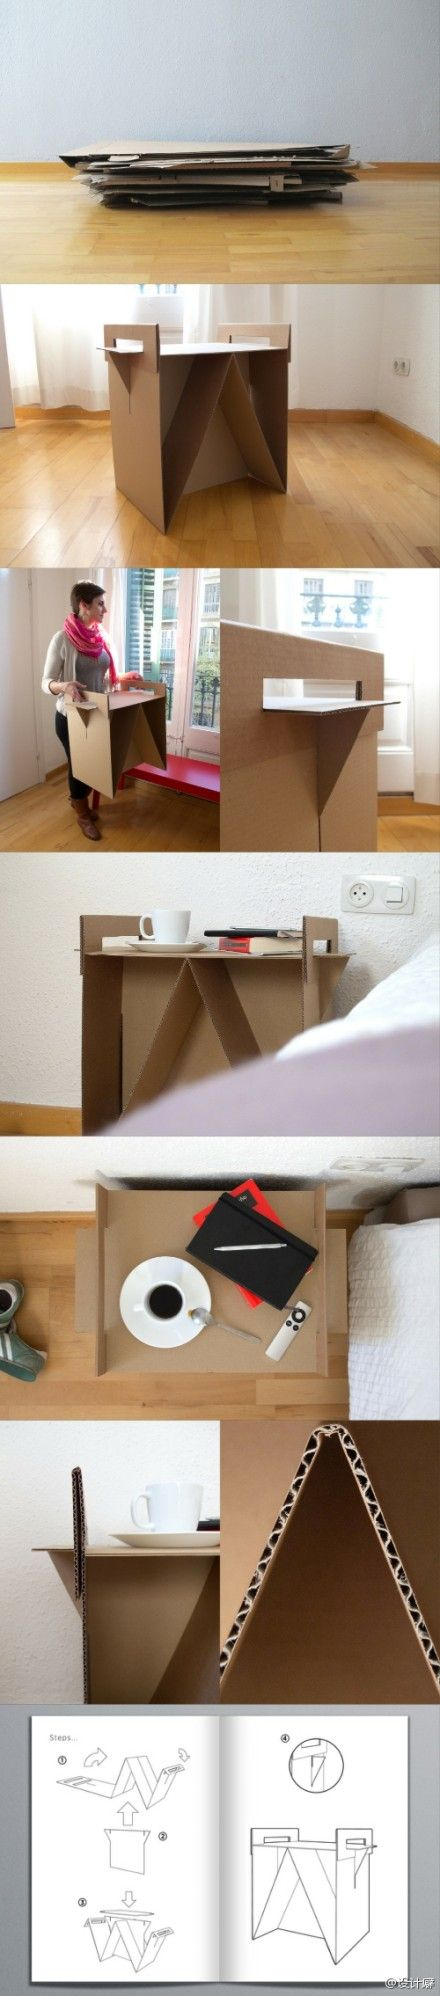 Time from IKEA fancier, or buying electrical appliances, and finally are facing the same problem: how to do the rest of the packaging carton? From Catalonia, Spain, furniture designer Adrian Candela also facing the same problem, he thought a good way to use cartons for a side table.